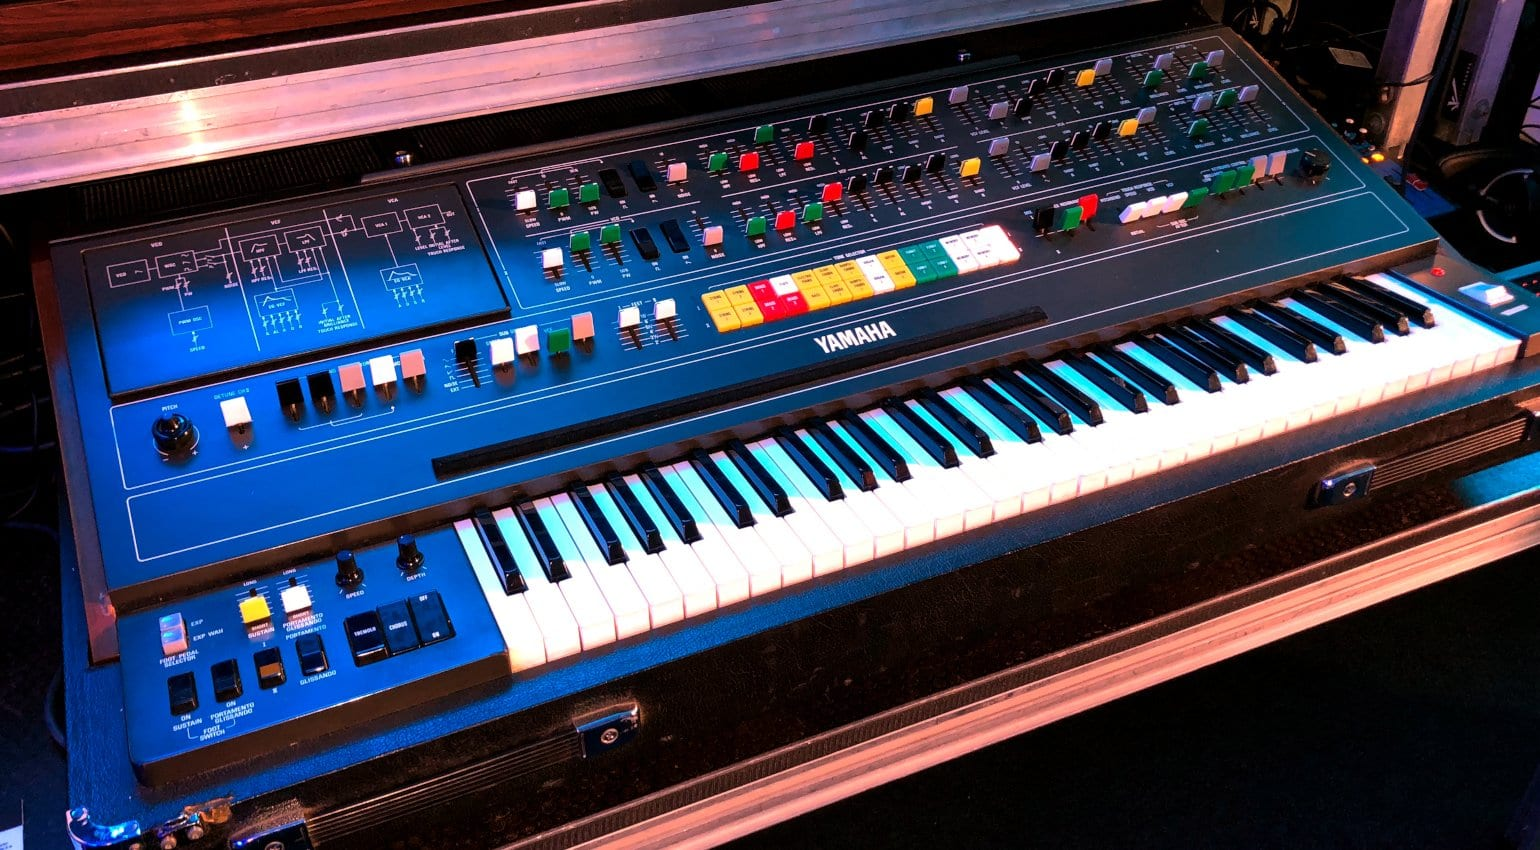 Yamaha asks if we'd like to see the return of the CS-80